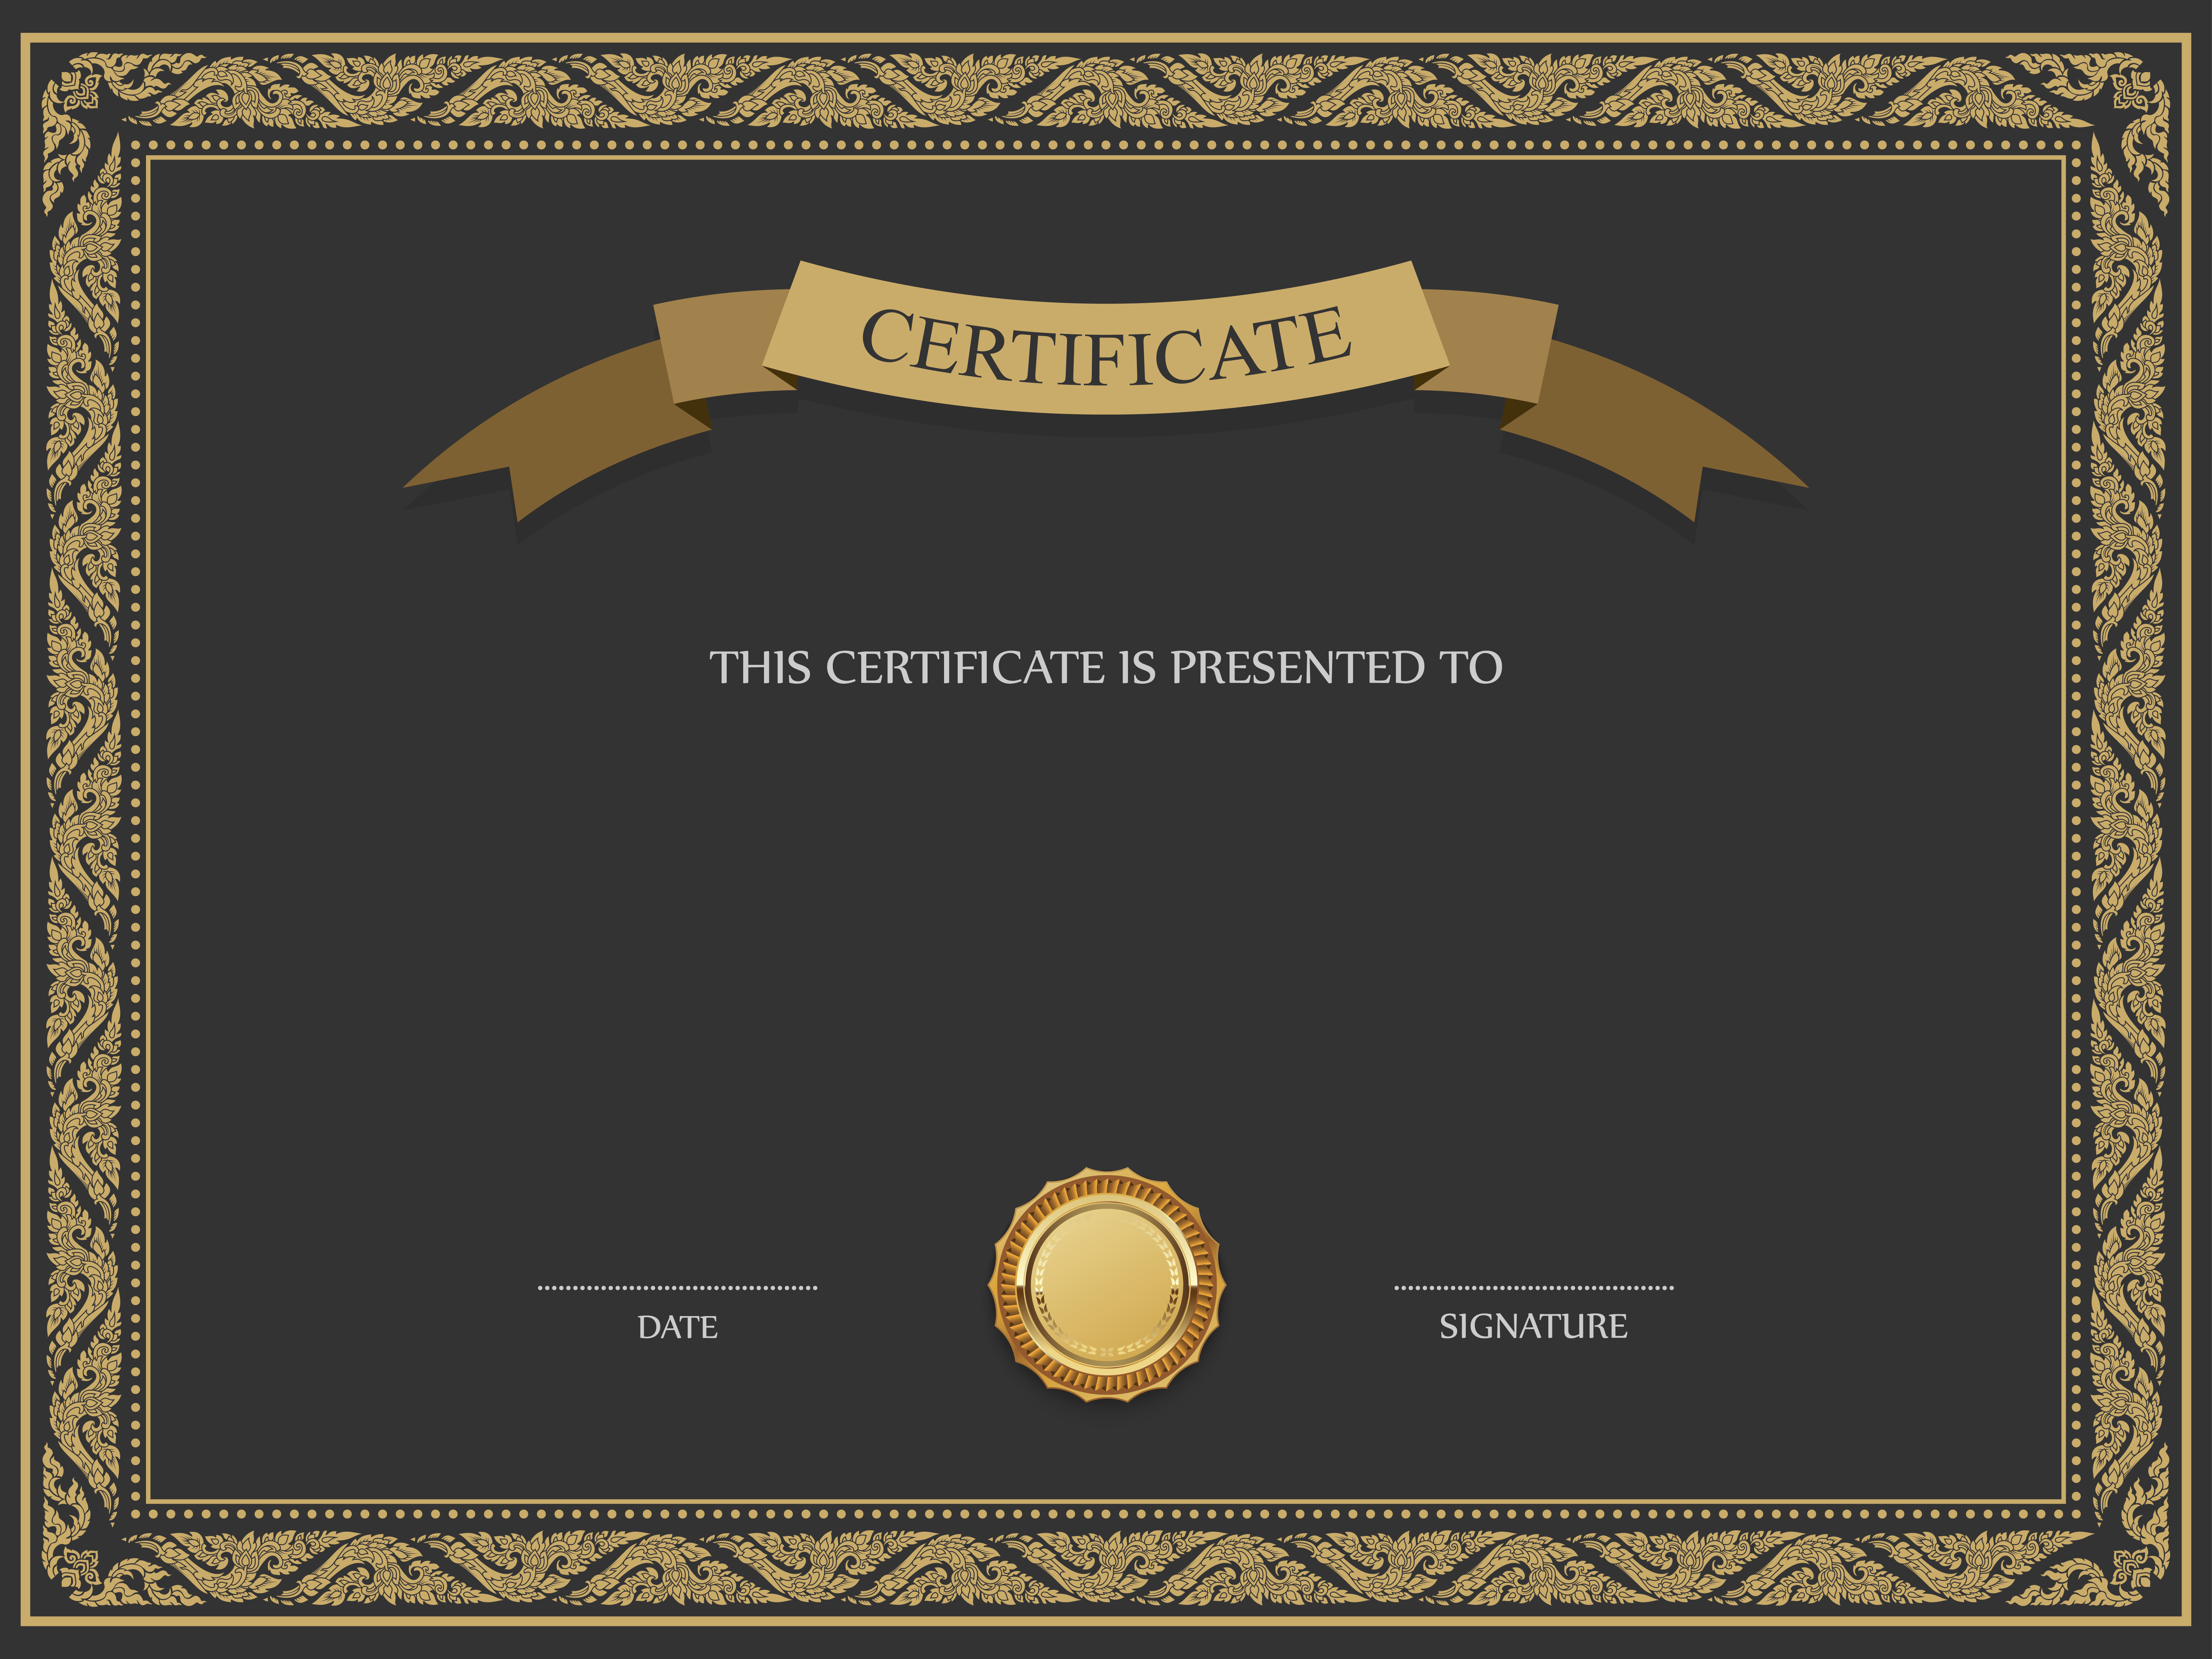 Black and Brown Certificate Template PNG Image.